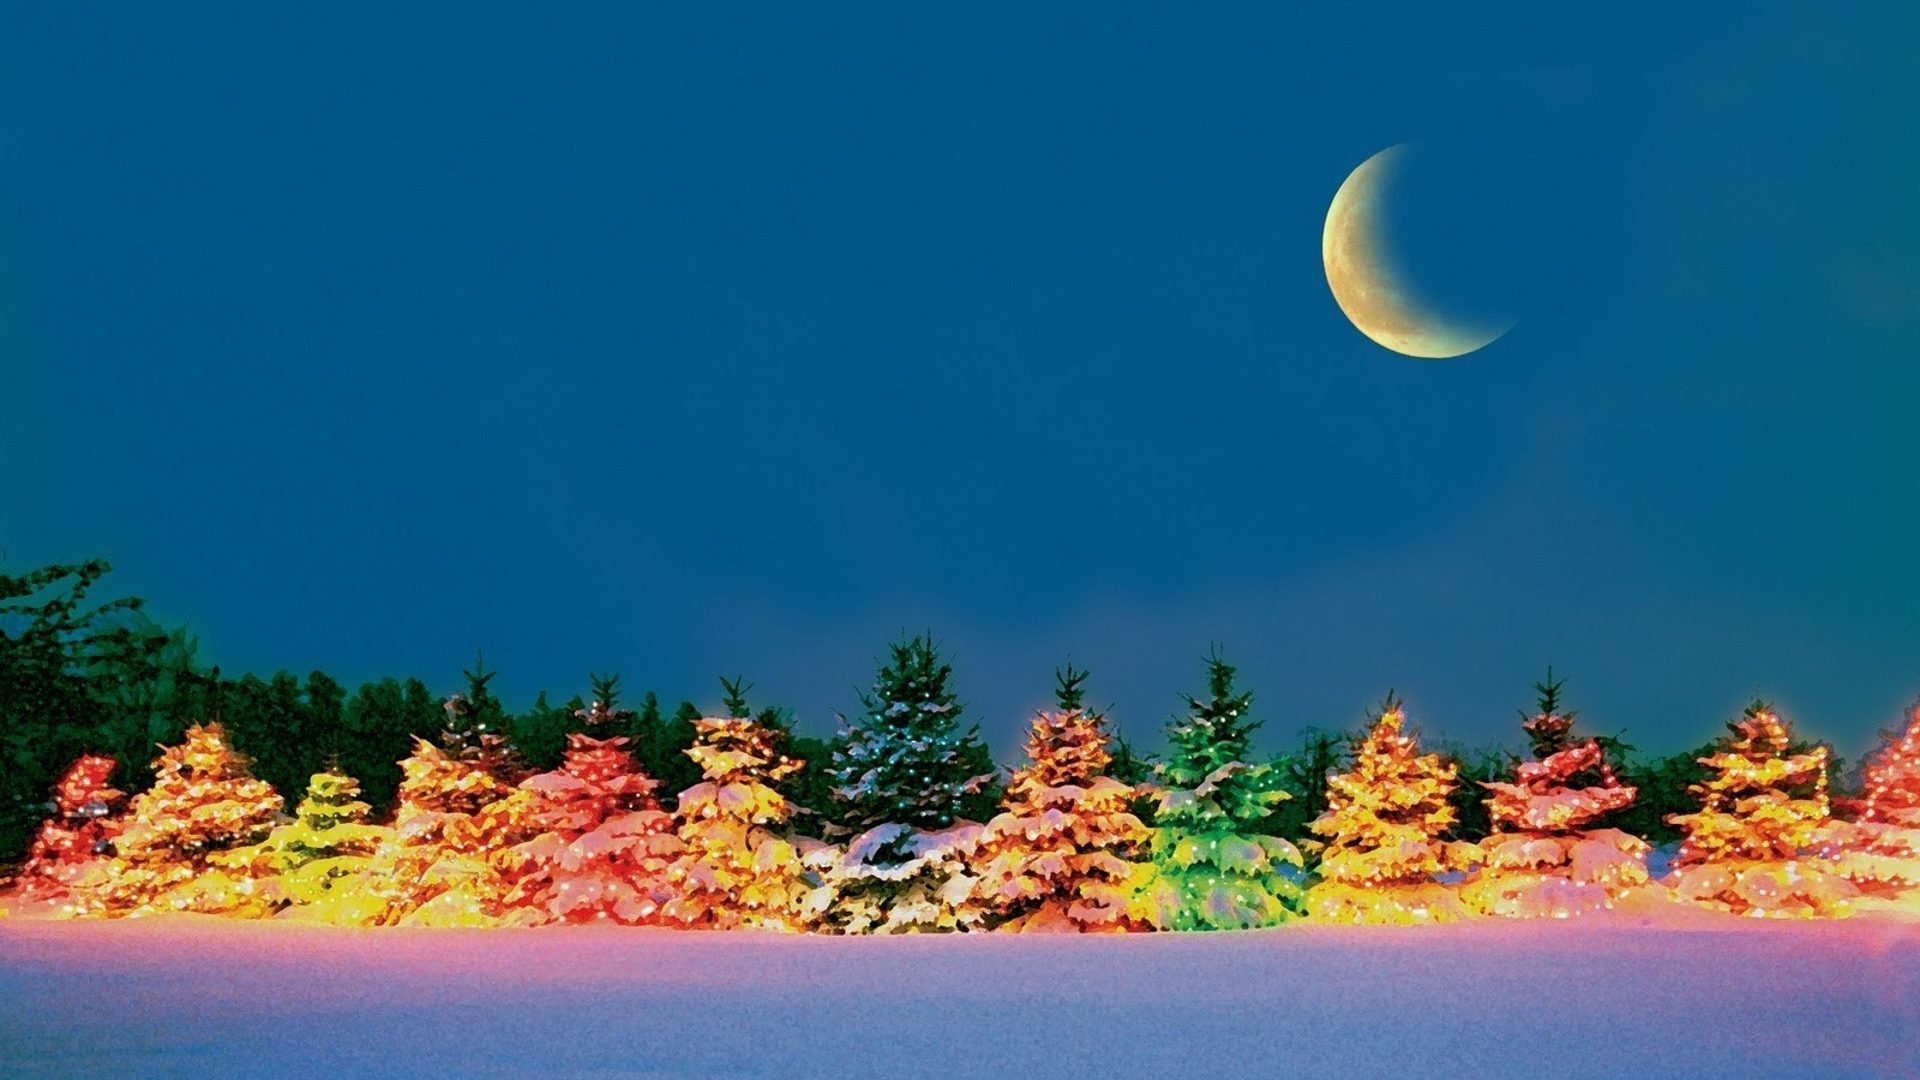 Colorful Tree In The Cold Winter Night Hd Wallpaper